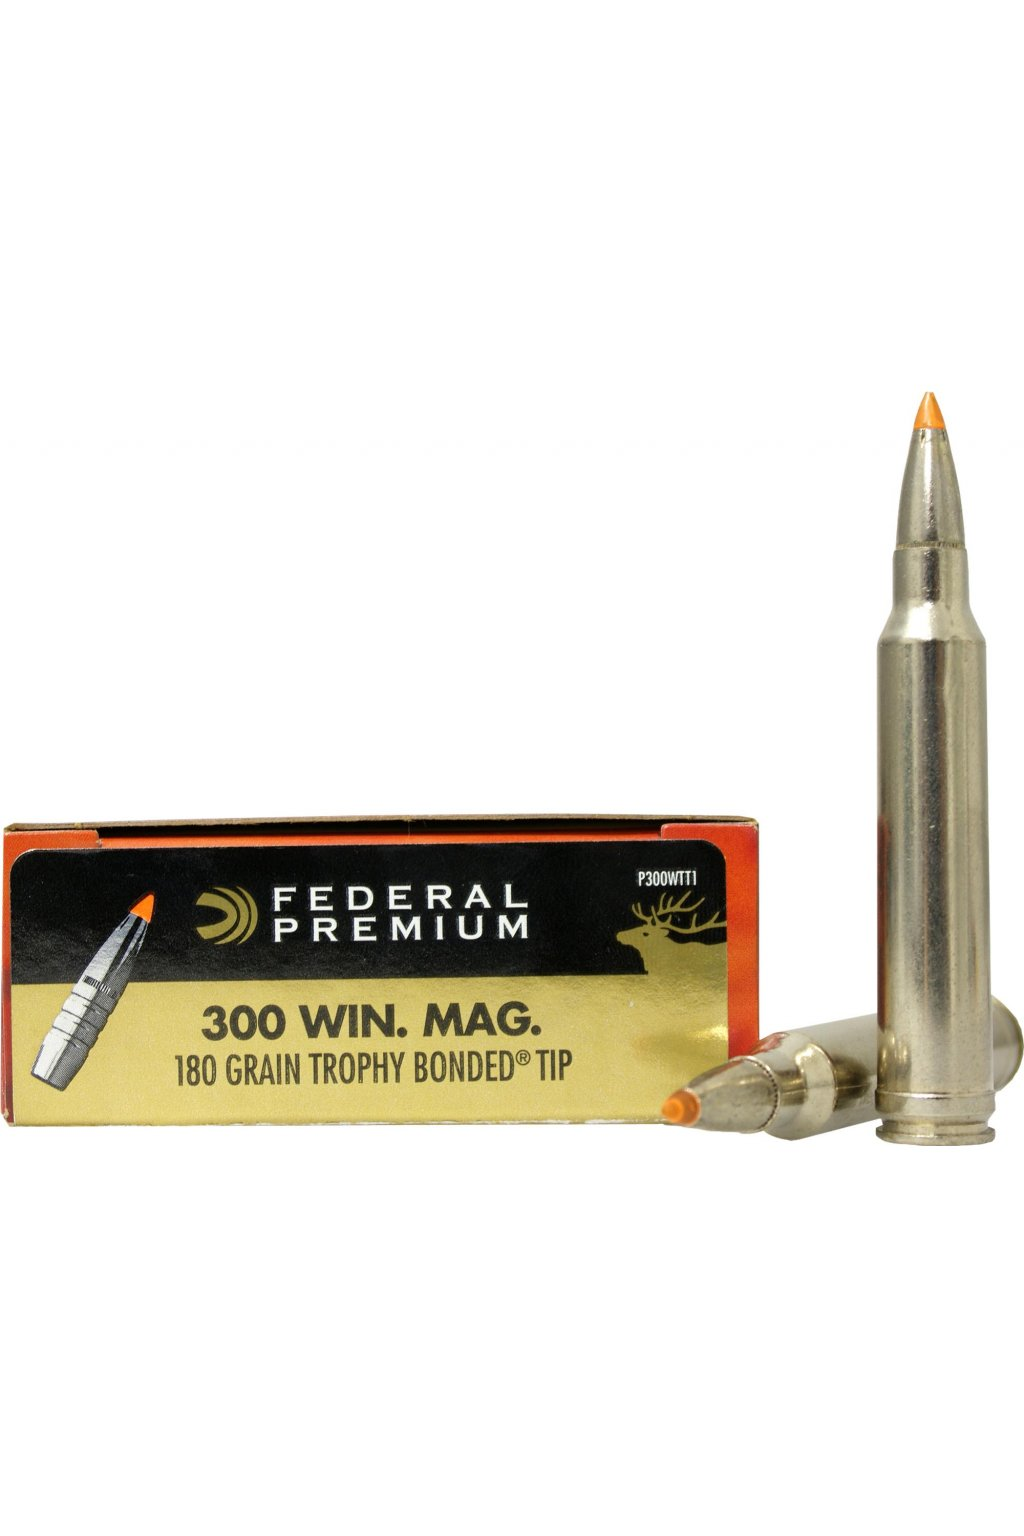 Federal Premium 300 Win Mag 11 66g 180grs Federal Trophy Bonded Tip 0